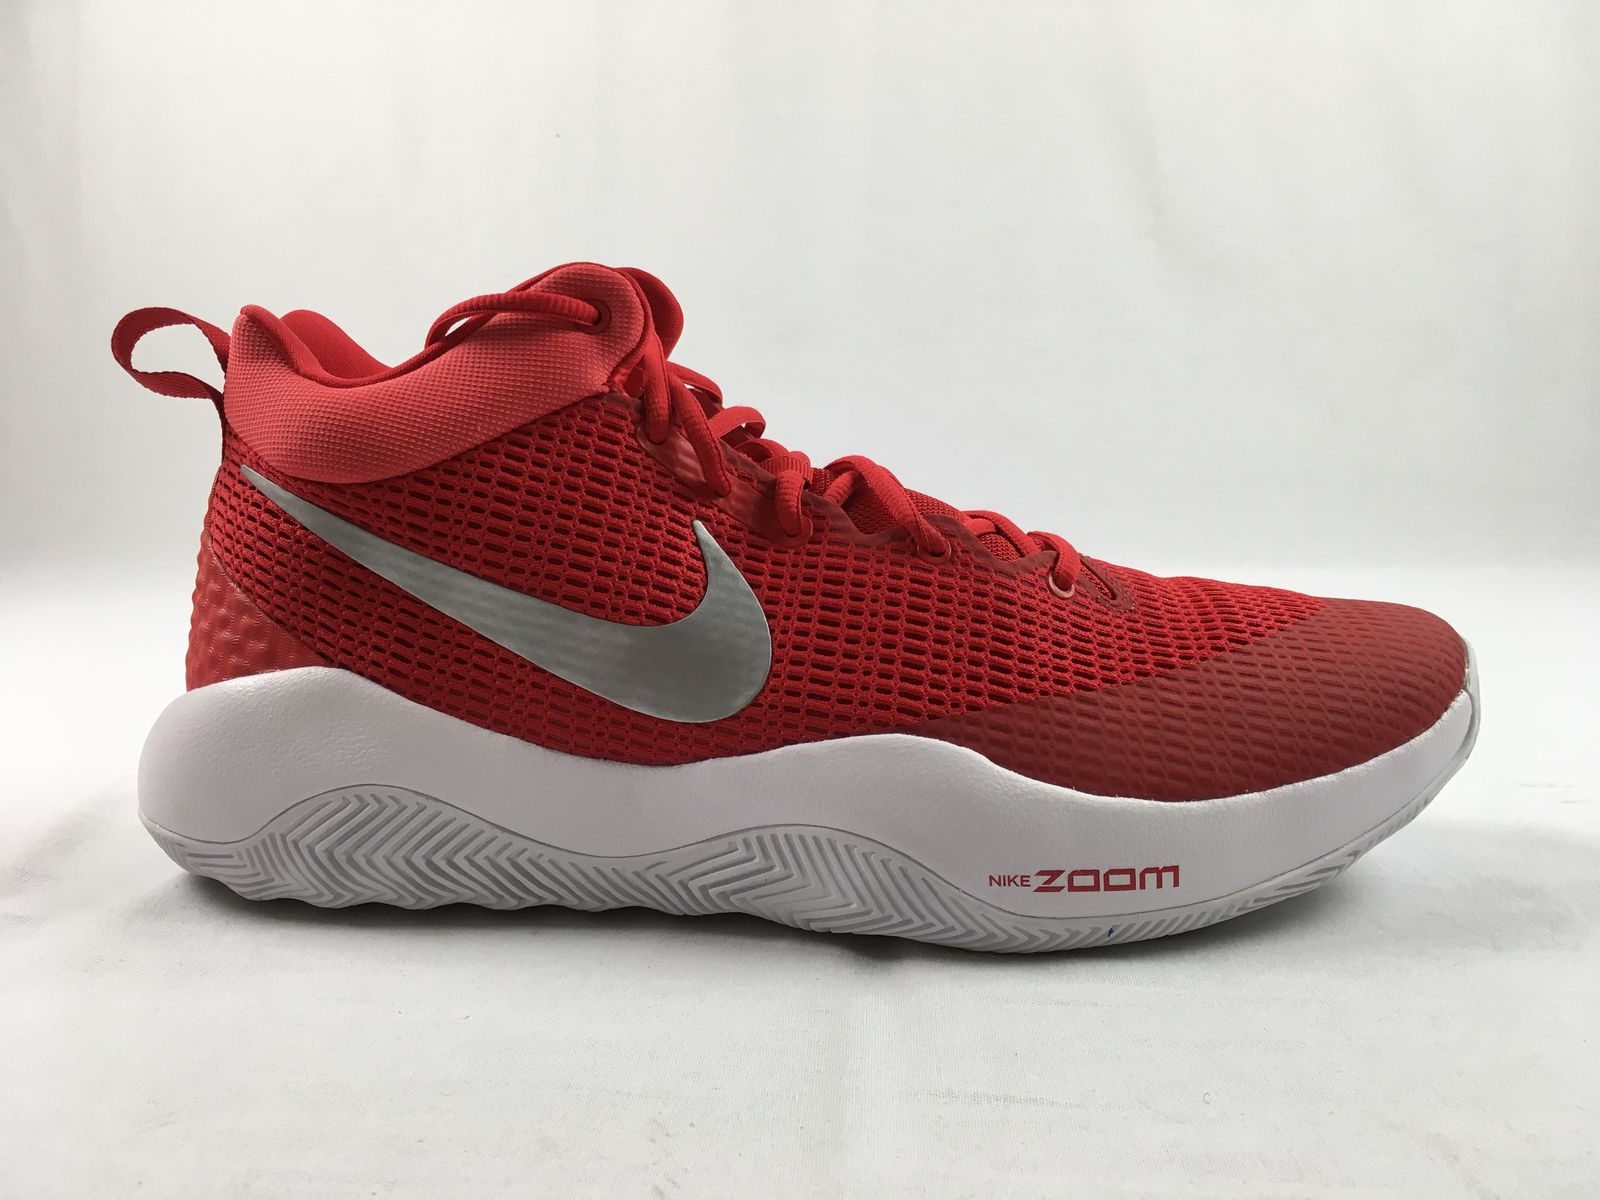 newest collection bf39b f1943 greece tenis nike zoom hyperrev 2015 caballero unico par 33a33 78ee0  get  new nike zoom rev red basketball shoes mens 15.5 c5a82 16345